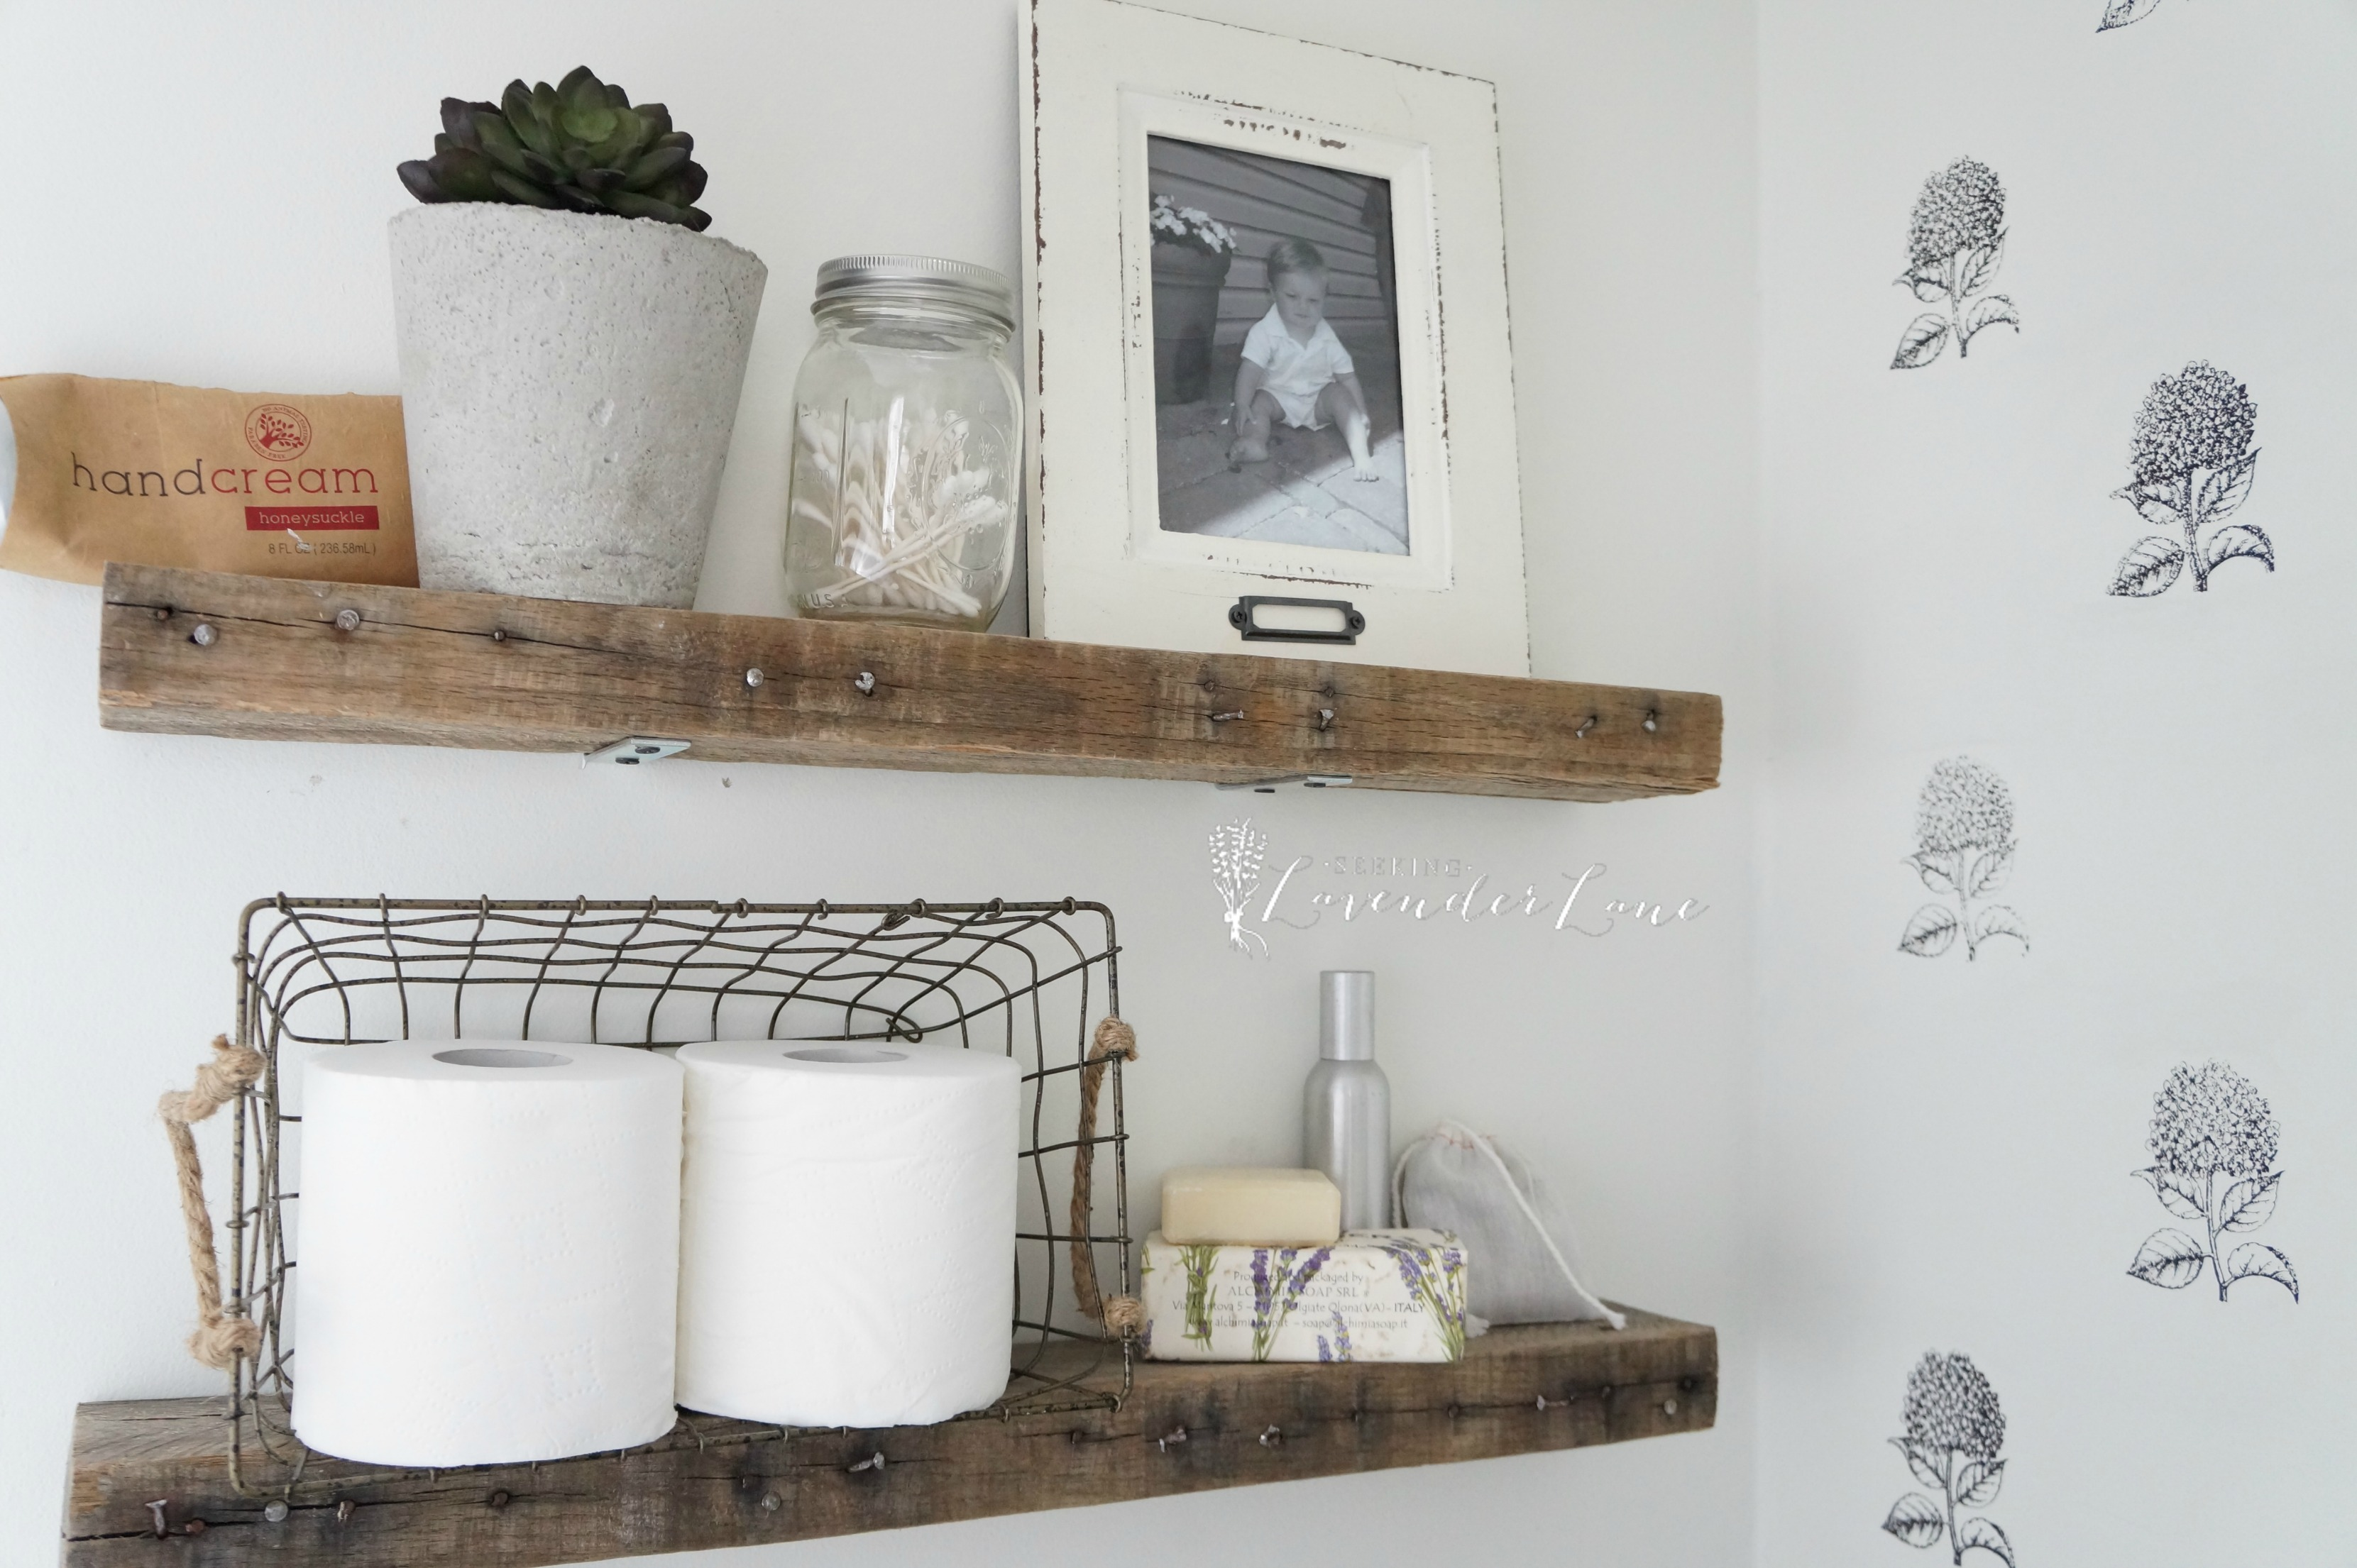 diy rustic bathroom shelves seeking lavendar lane pallet wood floating modular media furniture cute wall ikea thin shelf chimney brush mounted with towel bar oak mantle piece book